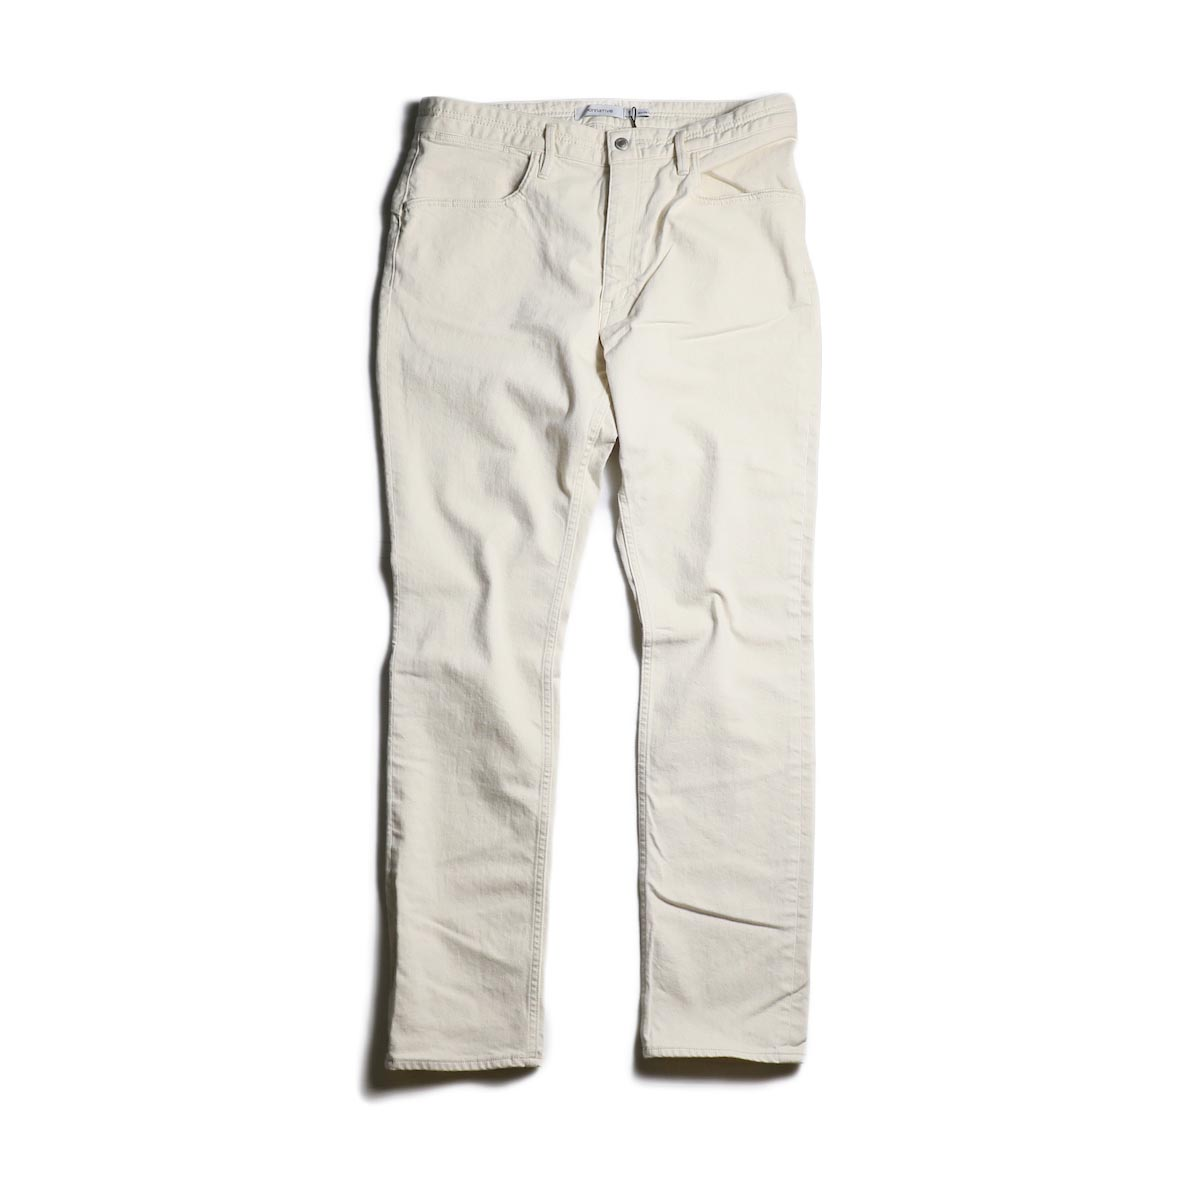 nonnative / DWELLER 5P JEANS DROPPED FIT C/P 12.5oz STRETCH DENIM OW (Off White)